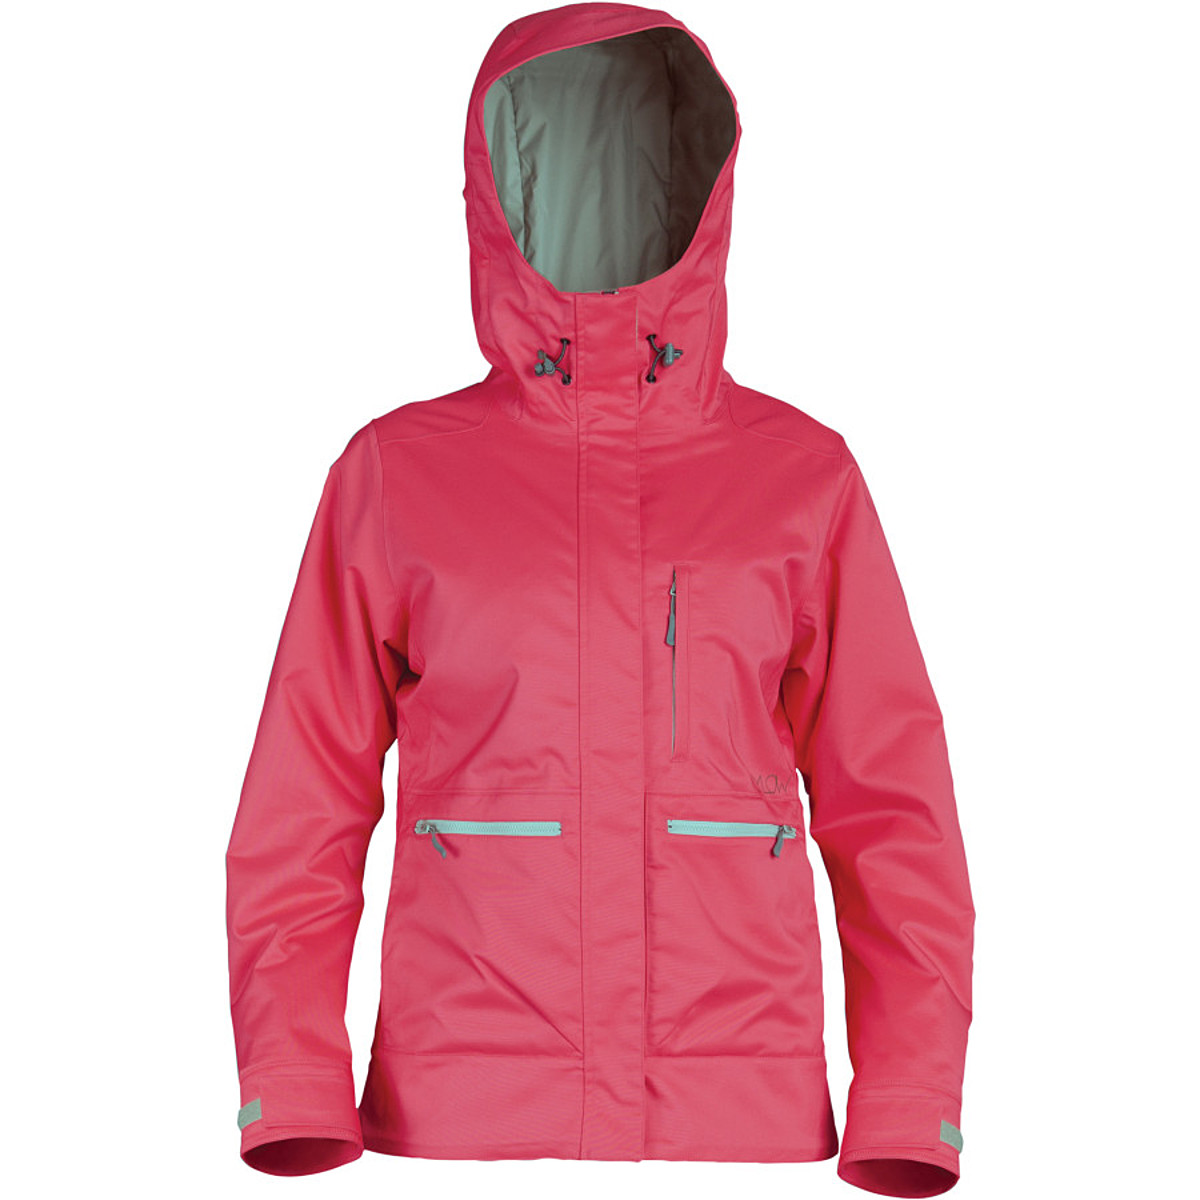 Flylow Gear Pheobe Jacket